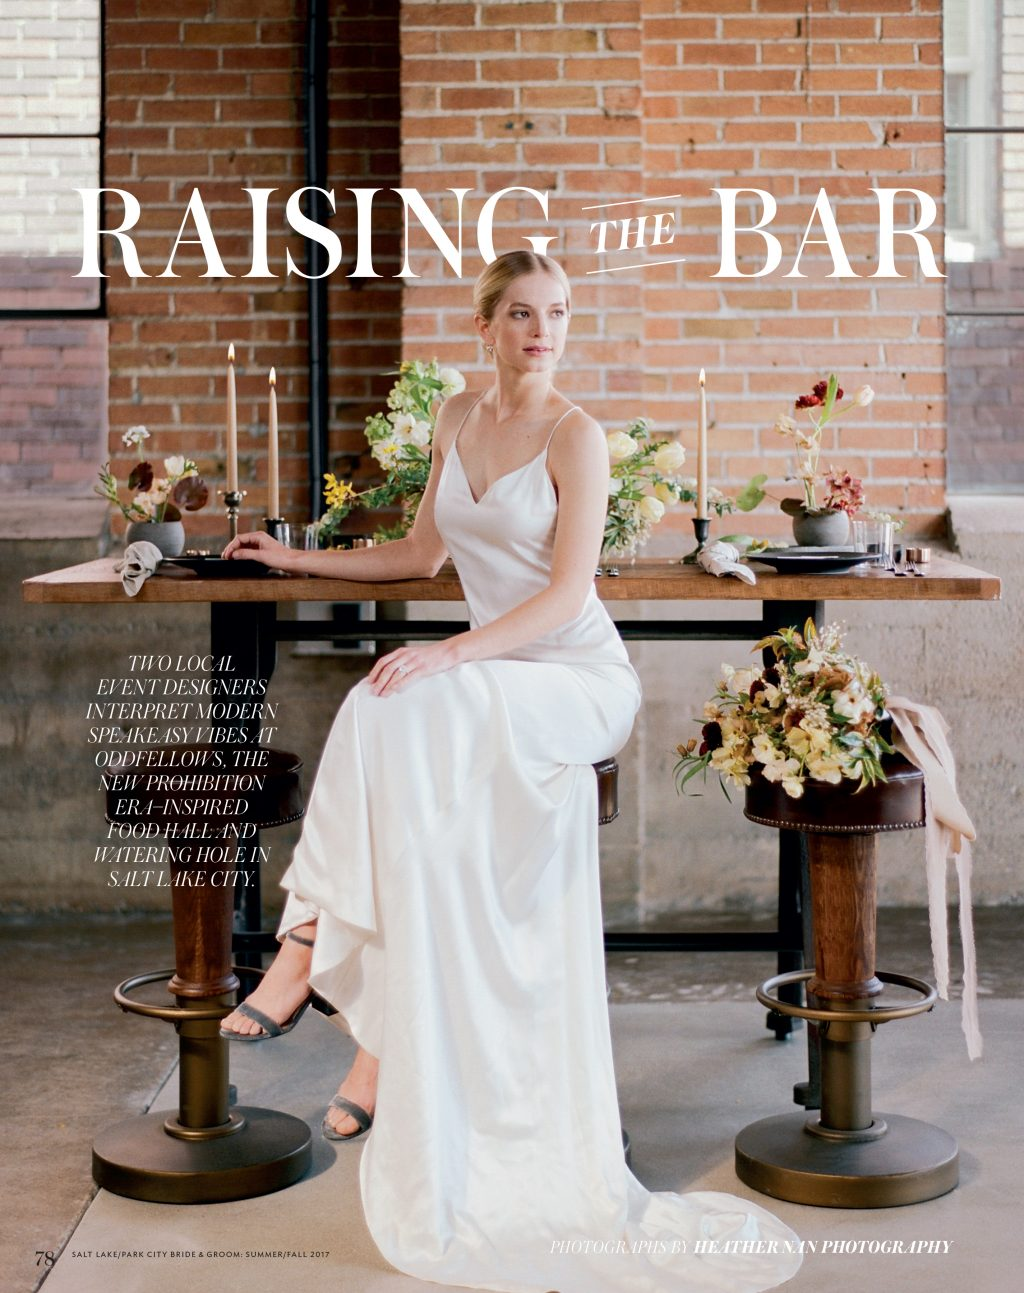 Bella Figura's Natura wedding invitations were featured in the Summer / Fall 2017 issue of Salt Lake / Park City Bride & Groom magazine